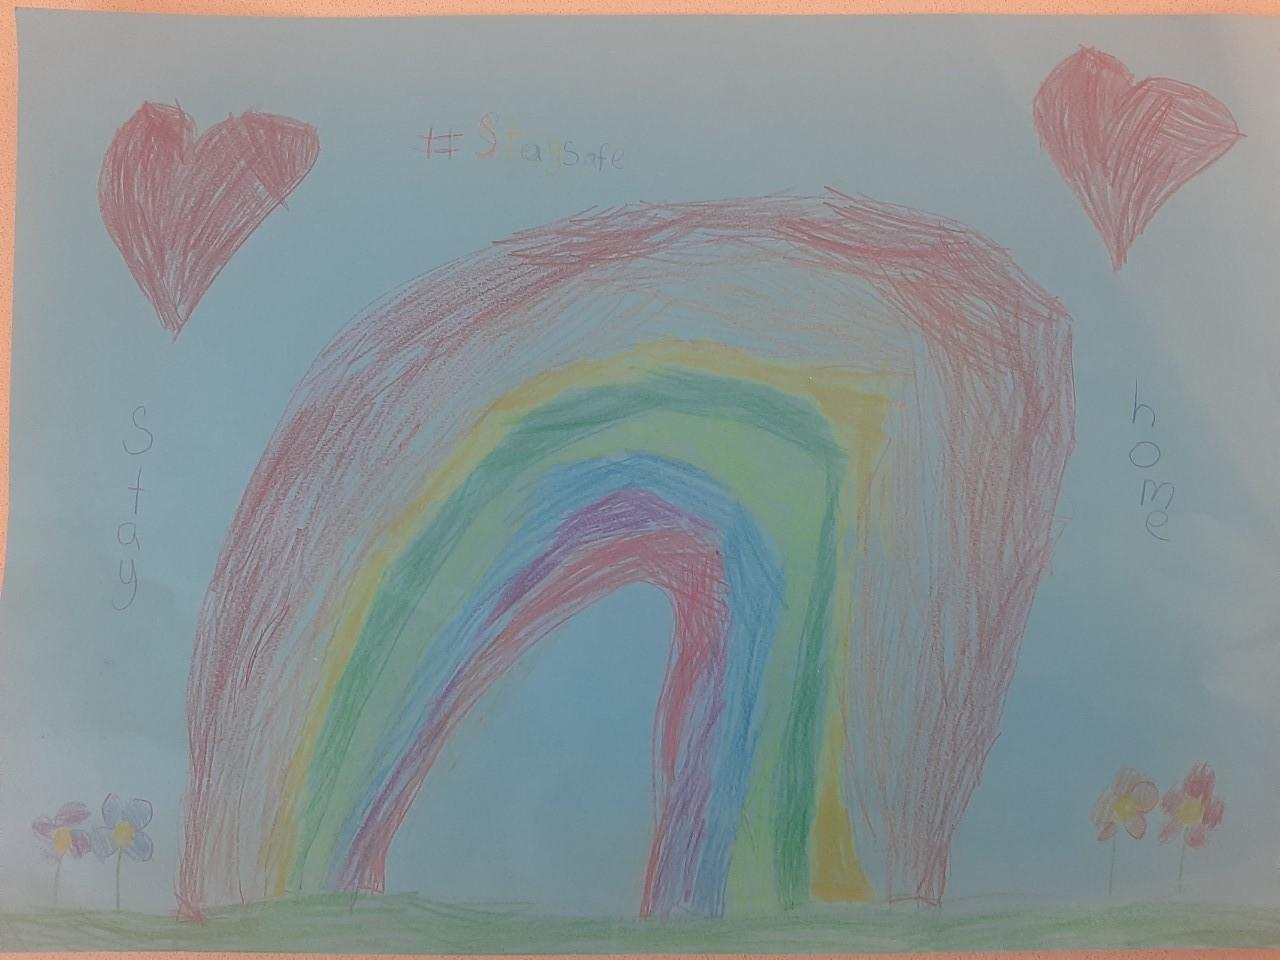 Vanessa (7) embellished her her rainbow with hearts and flowers.